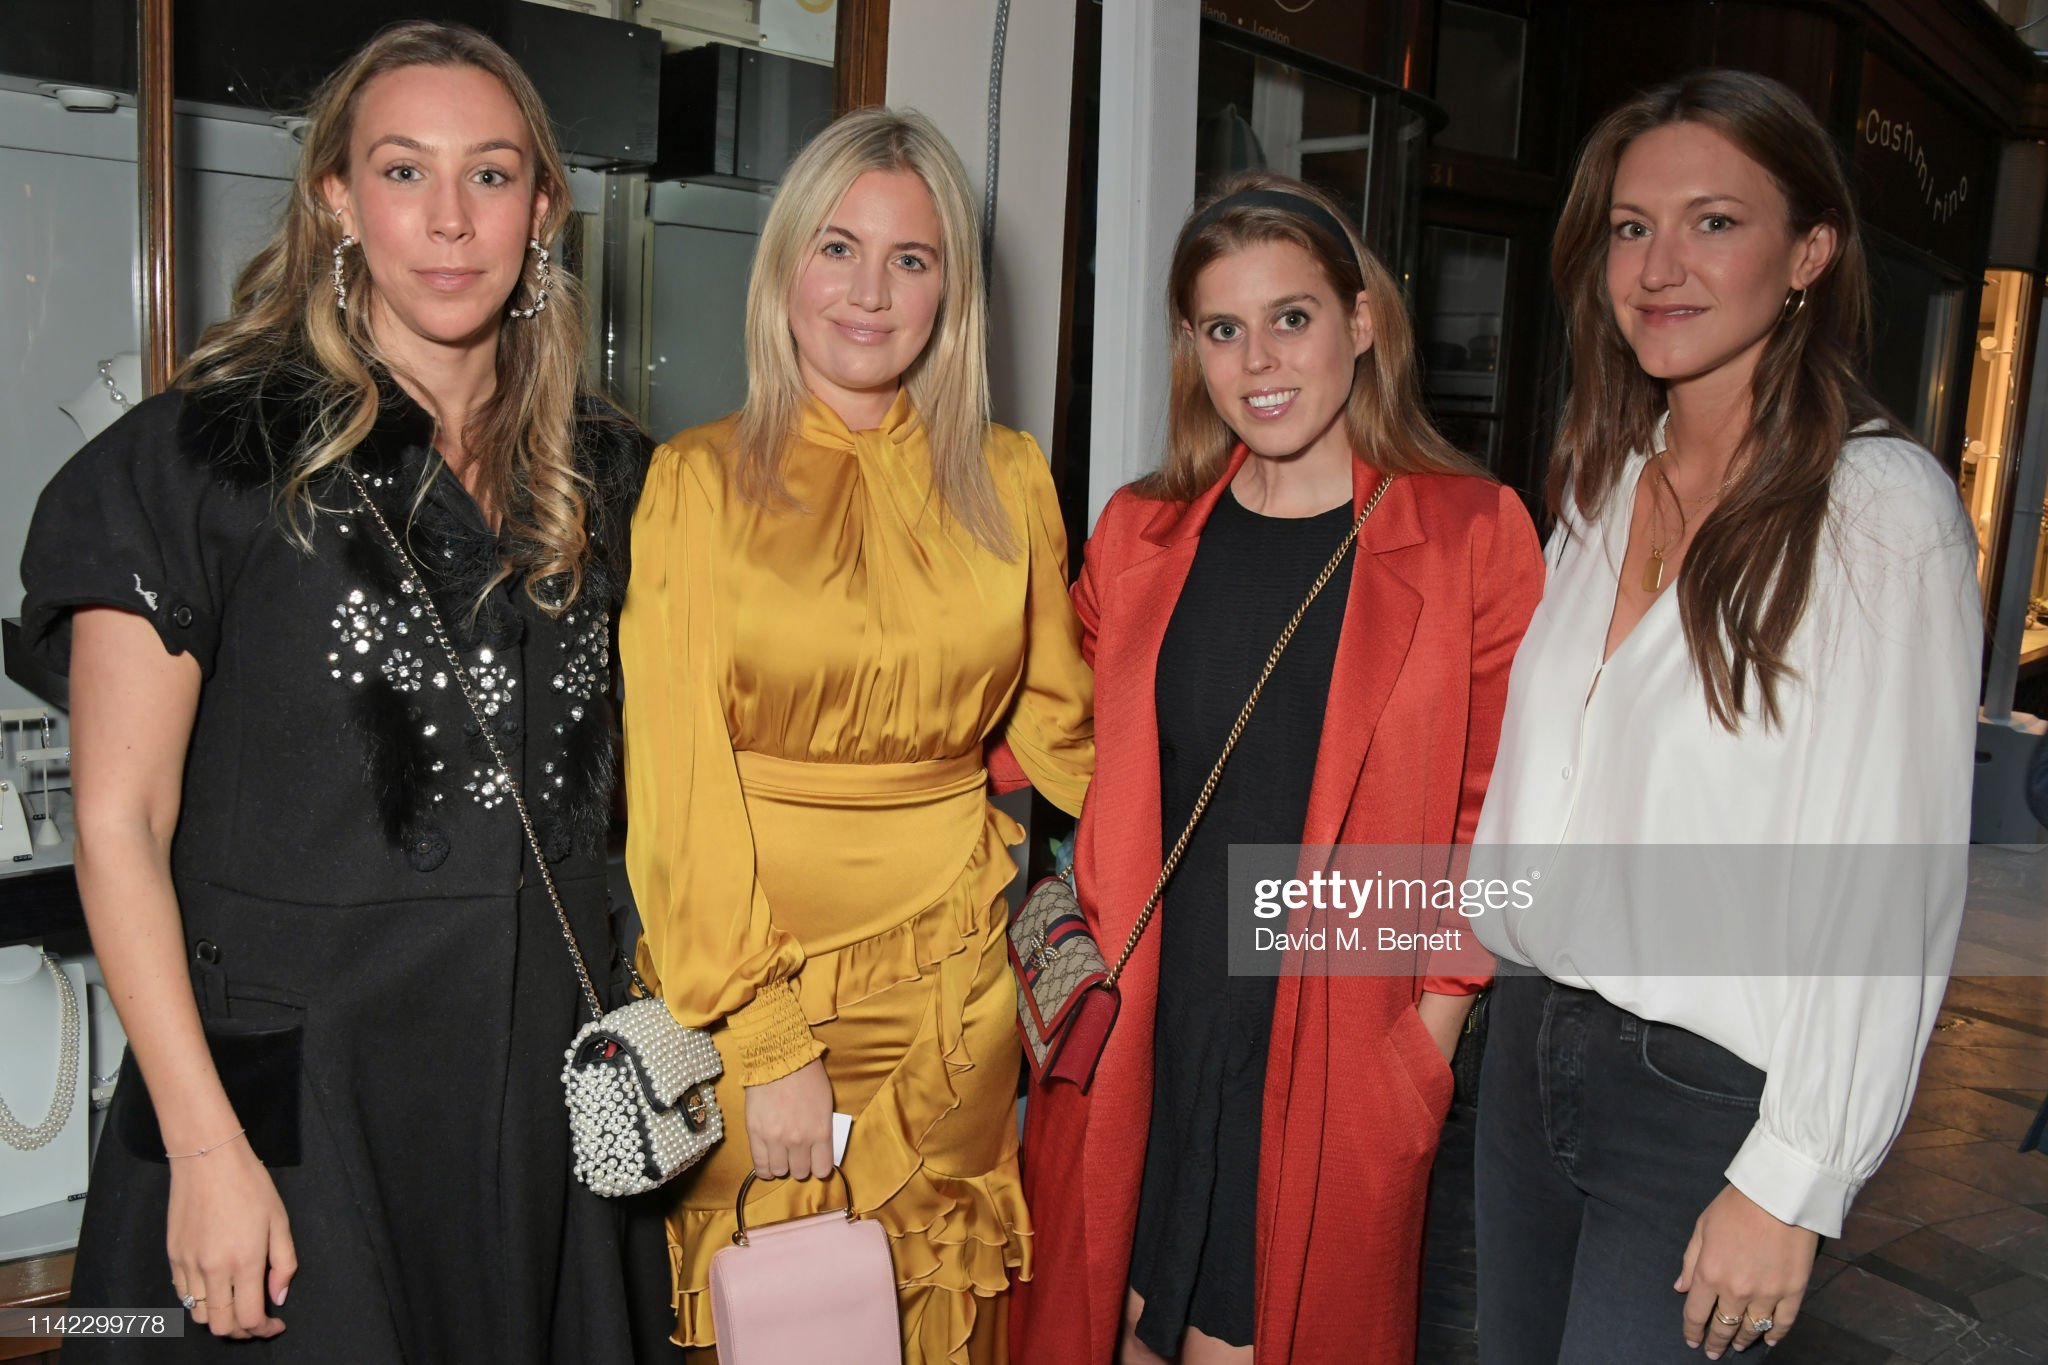 https://media.gettyimages.com/photos/melissa-mills-marissa-montgomery-princess-beatrice-of-york-and-the-picture-id1142299778?s=2048x2048